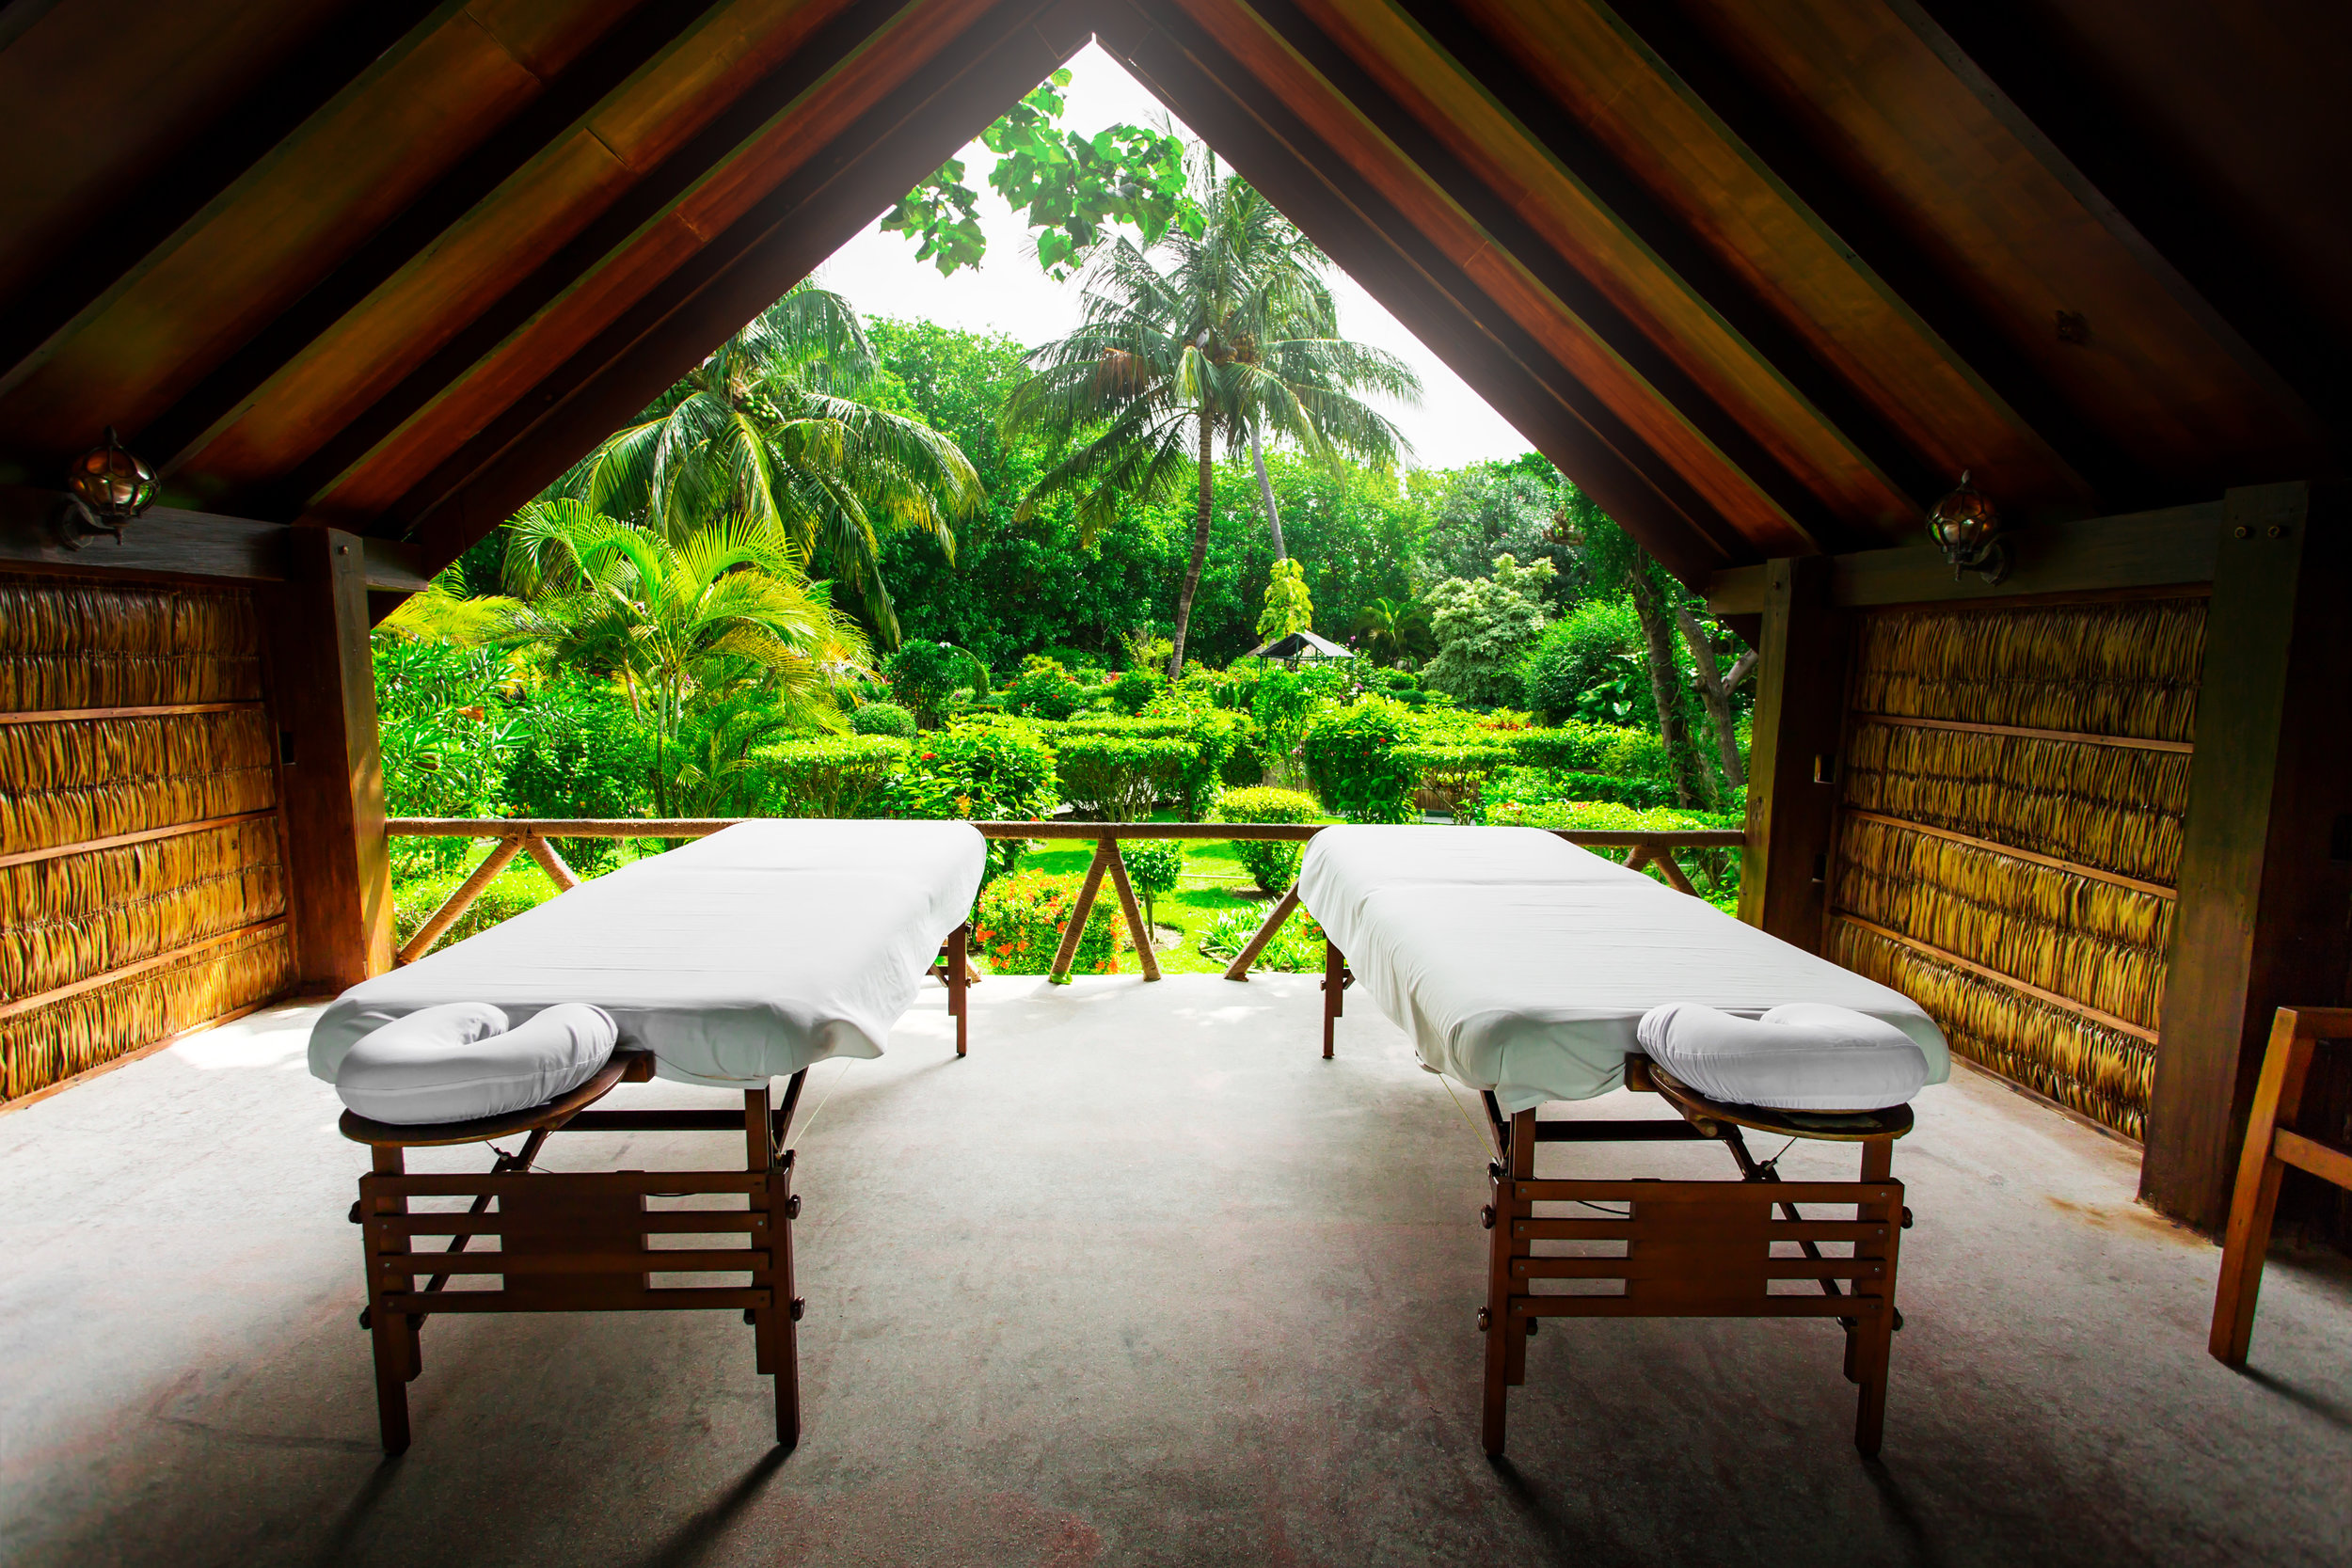 massage tables in jungle.jpeg